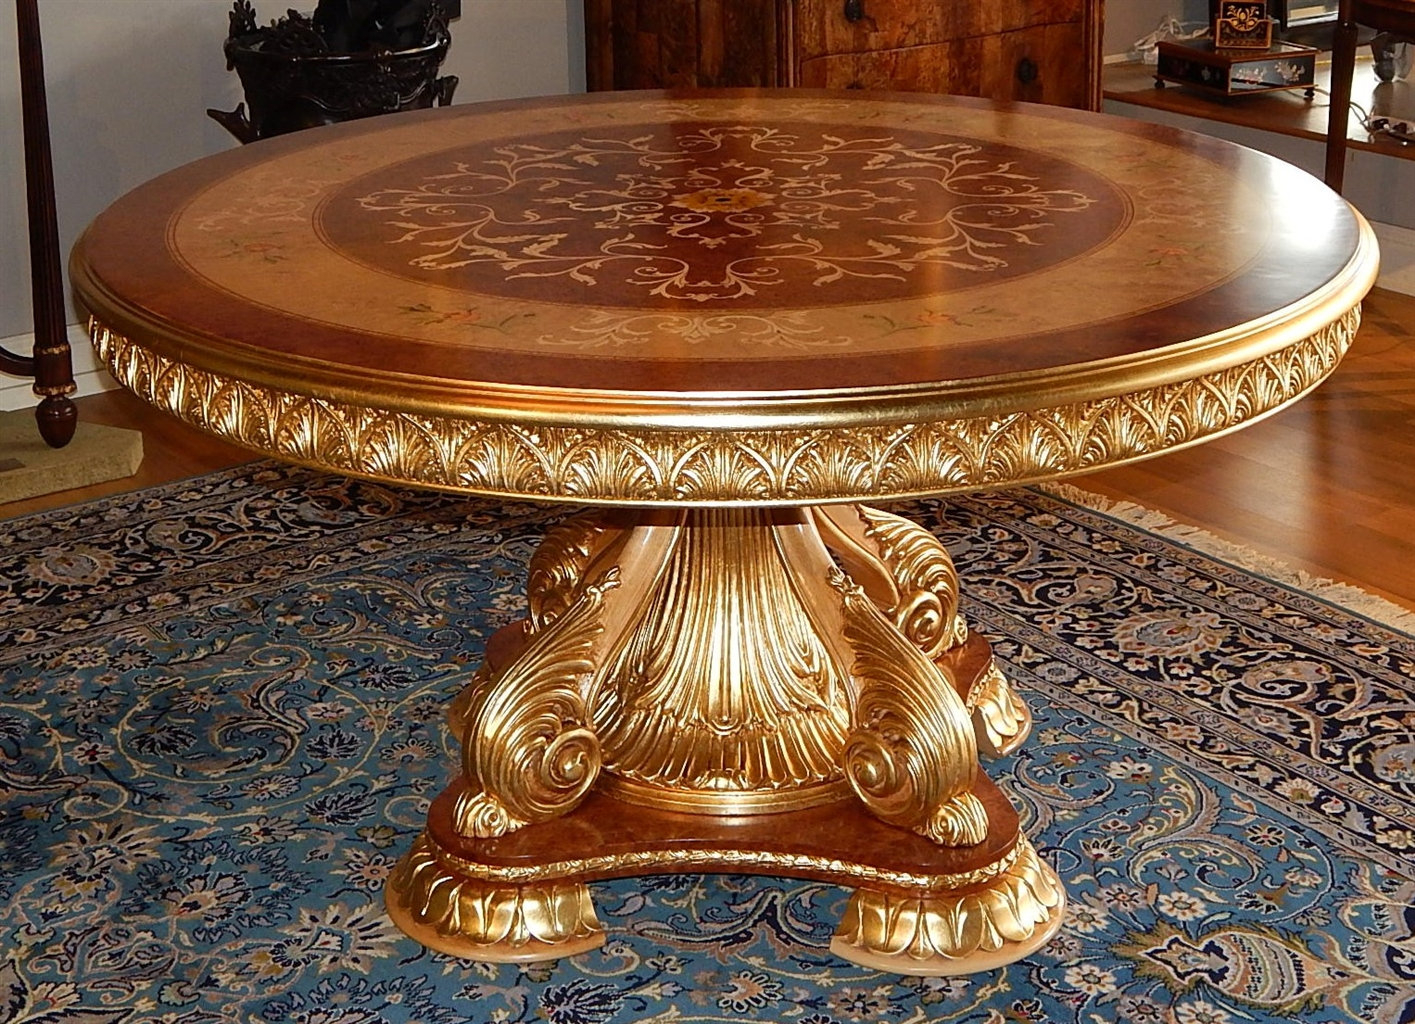 Luxury foyer center table exquisite marquetry and detail for Luxury dinner table